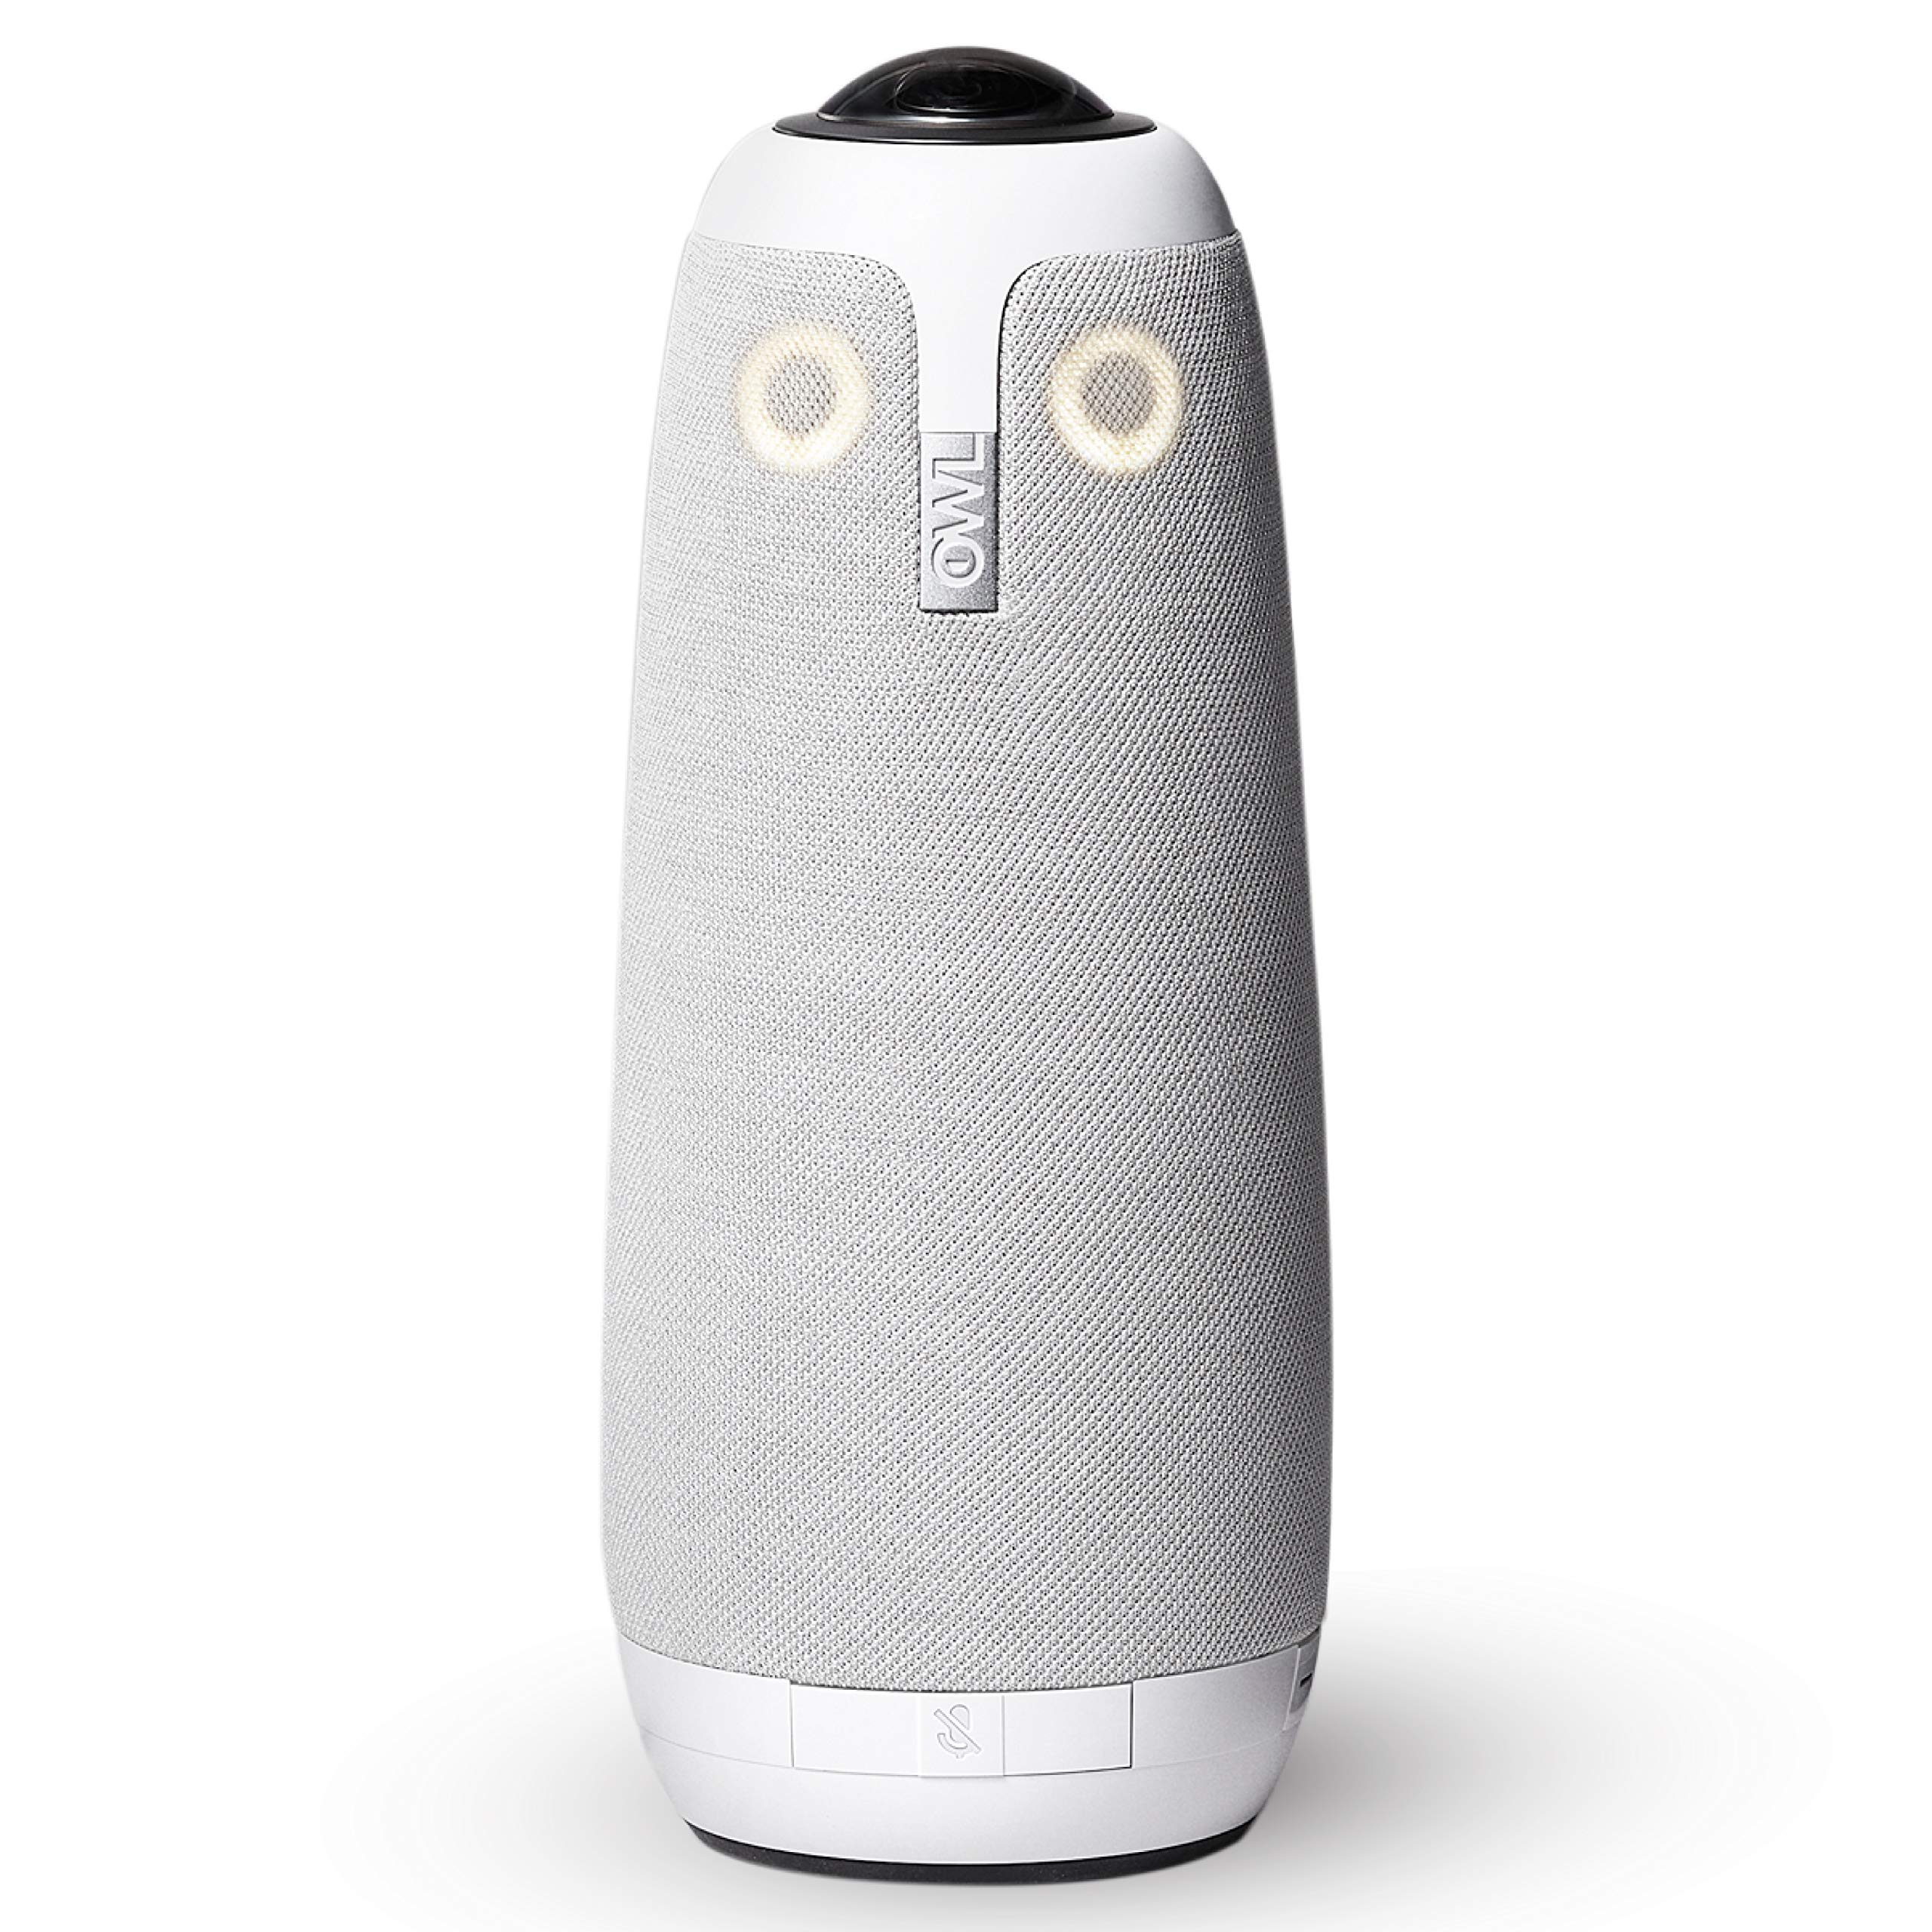 Meeting Owl Pro - 360-Degree, 1080p HD Smart Video Conference Camera, Microphone, and Speaker (Automatic Speaker Focus & Smart Zooming and Noise Equalizing)